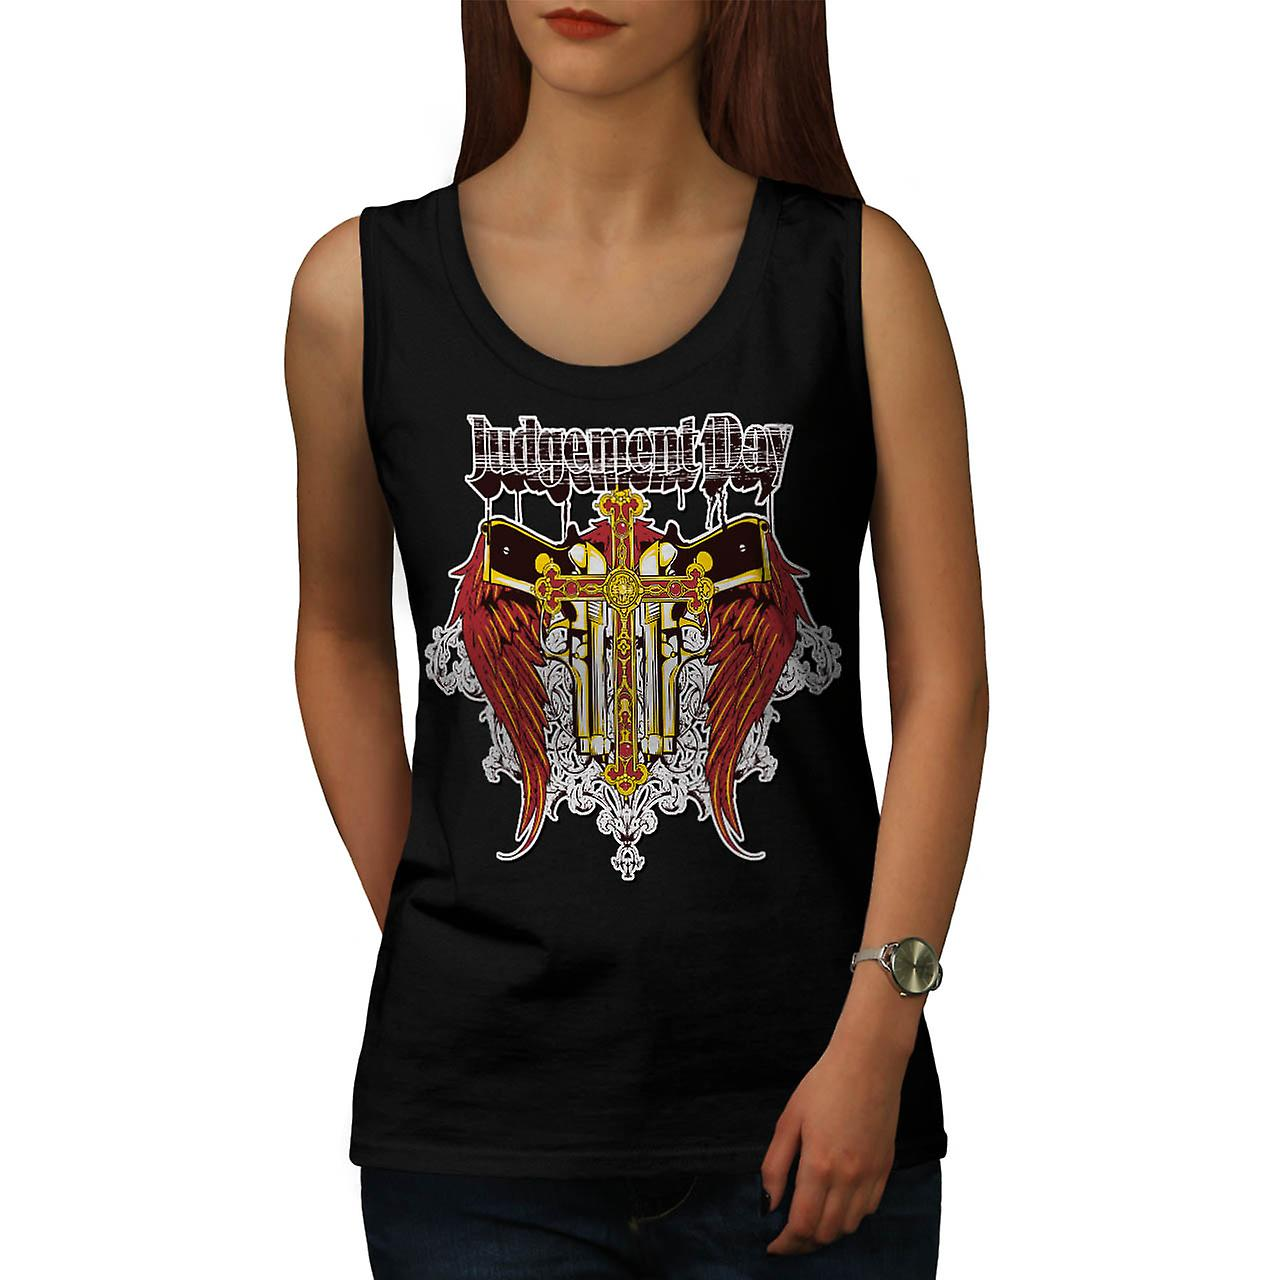 Judgement Day Fashion Women Black Tank Top | Wellcoda